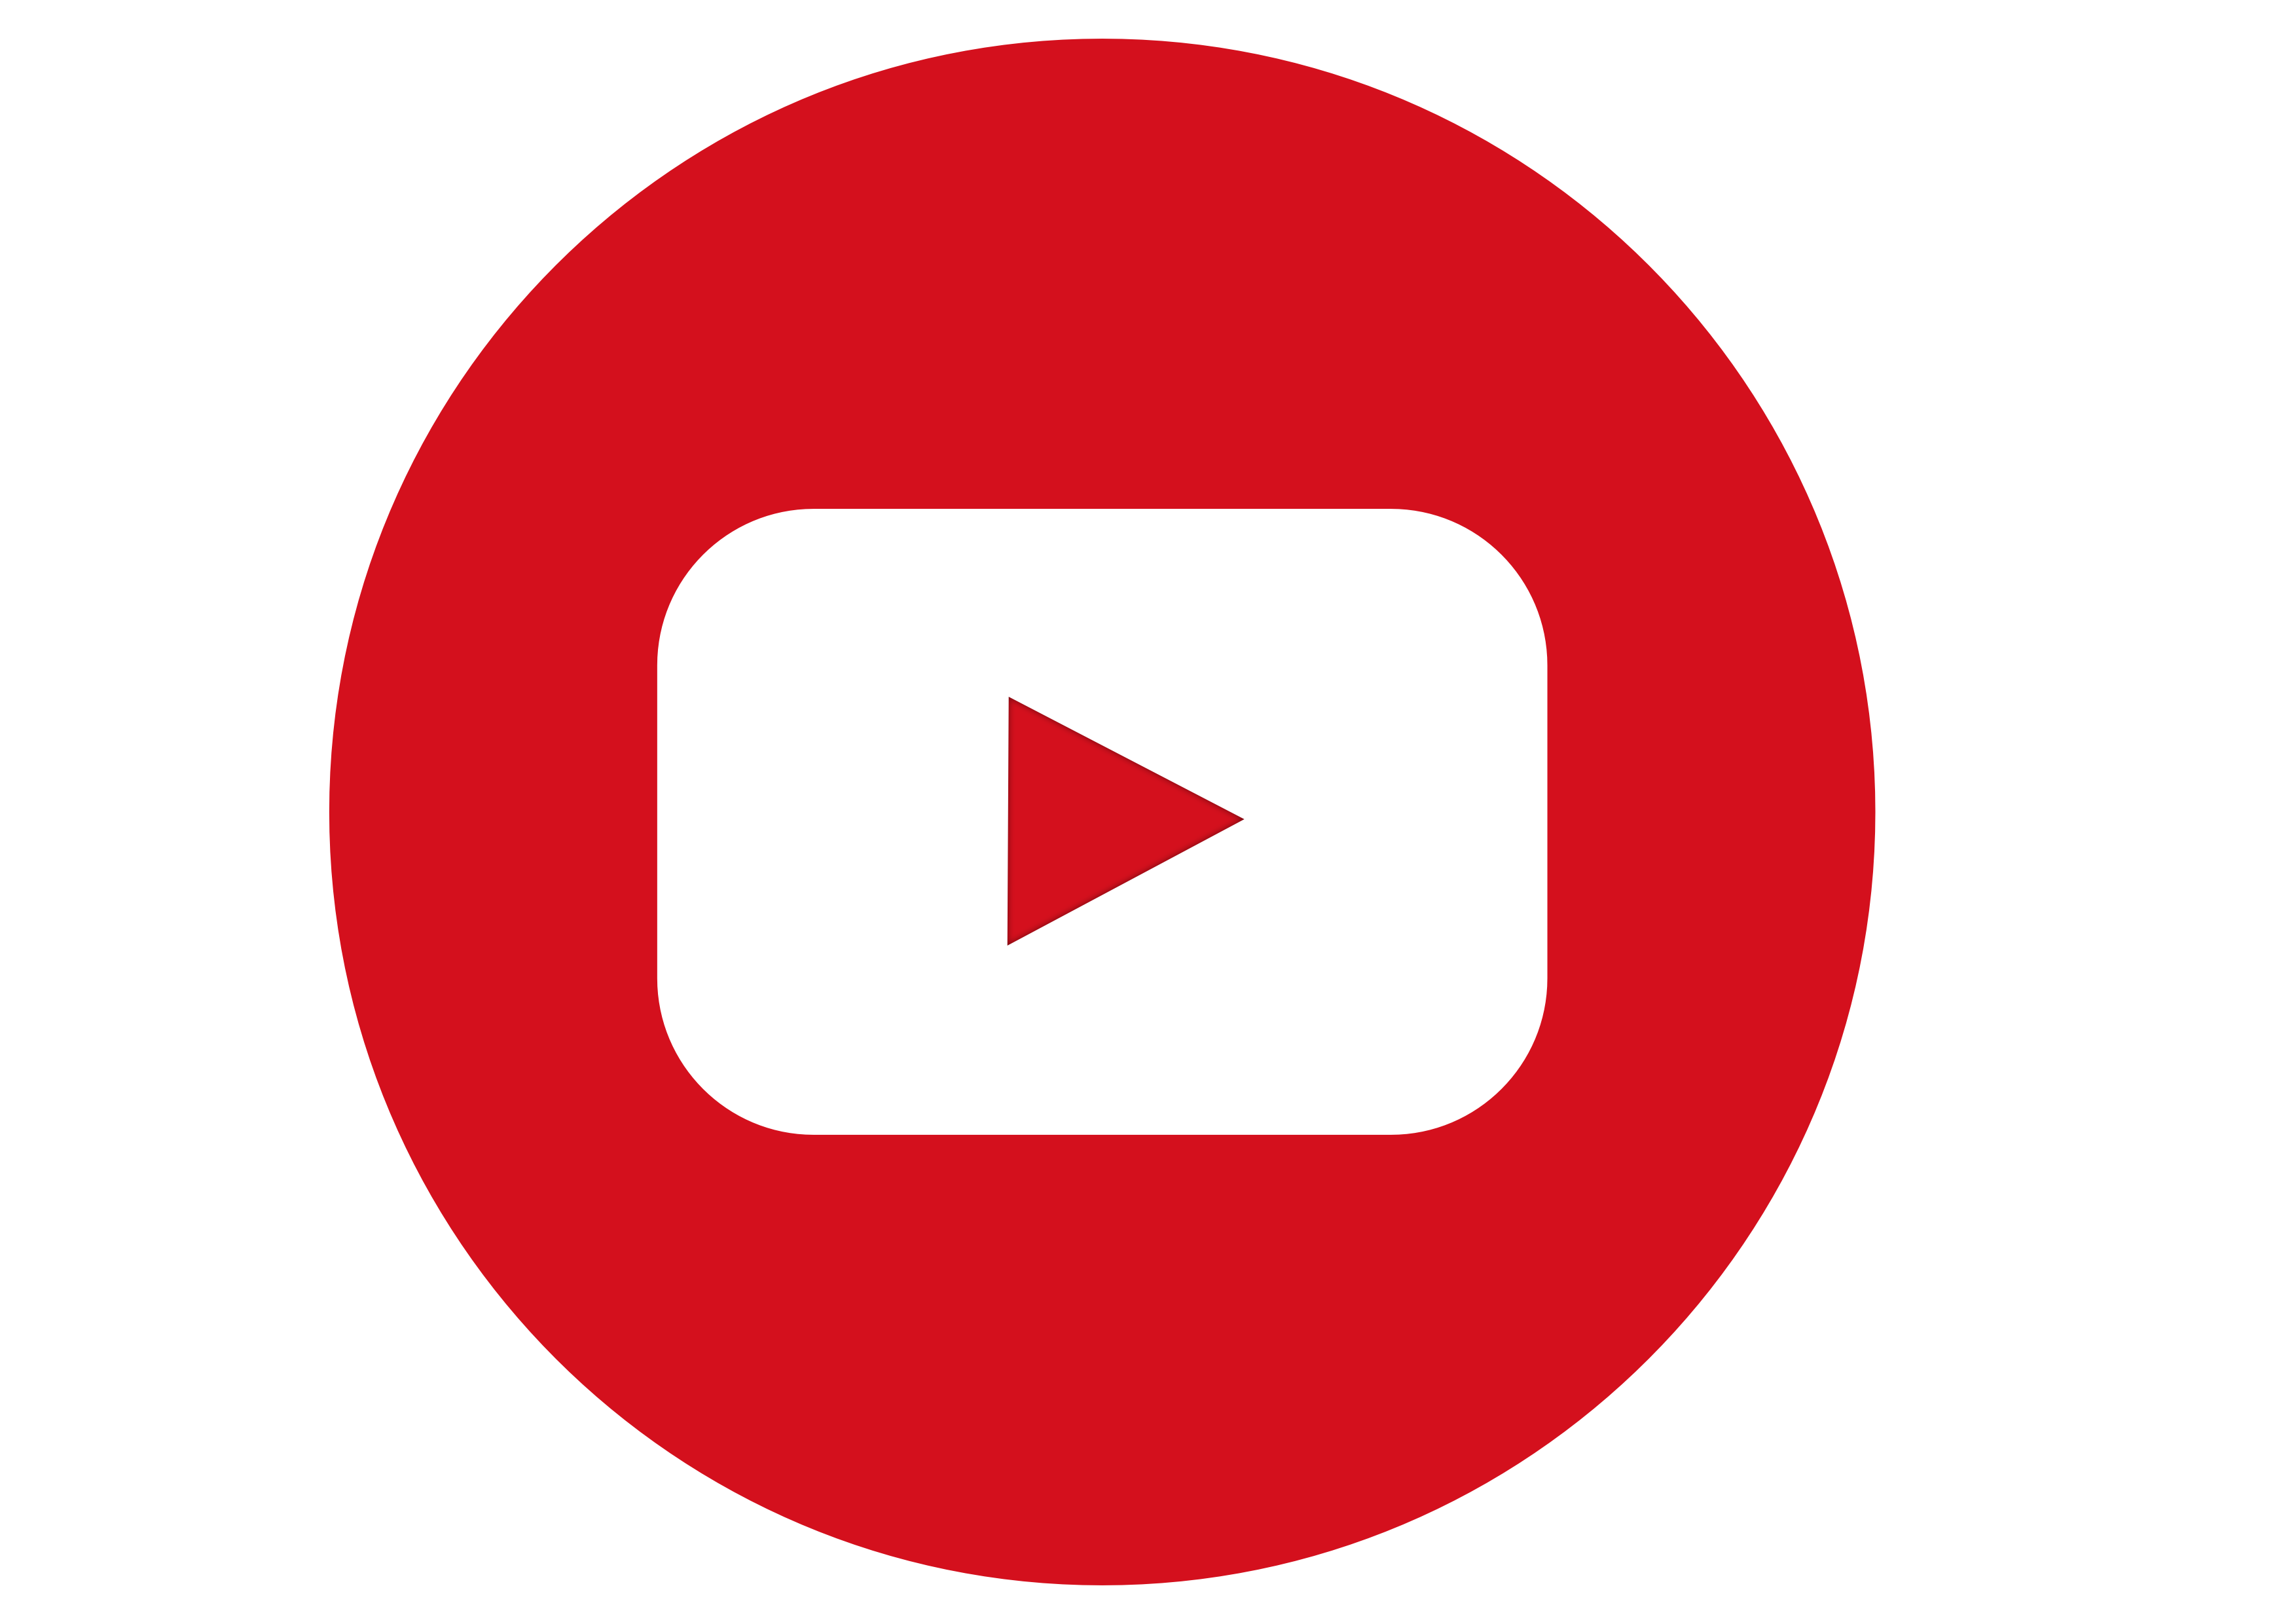 youtube-logo-icon-transparent-32 - Special Olympics France